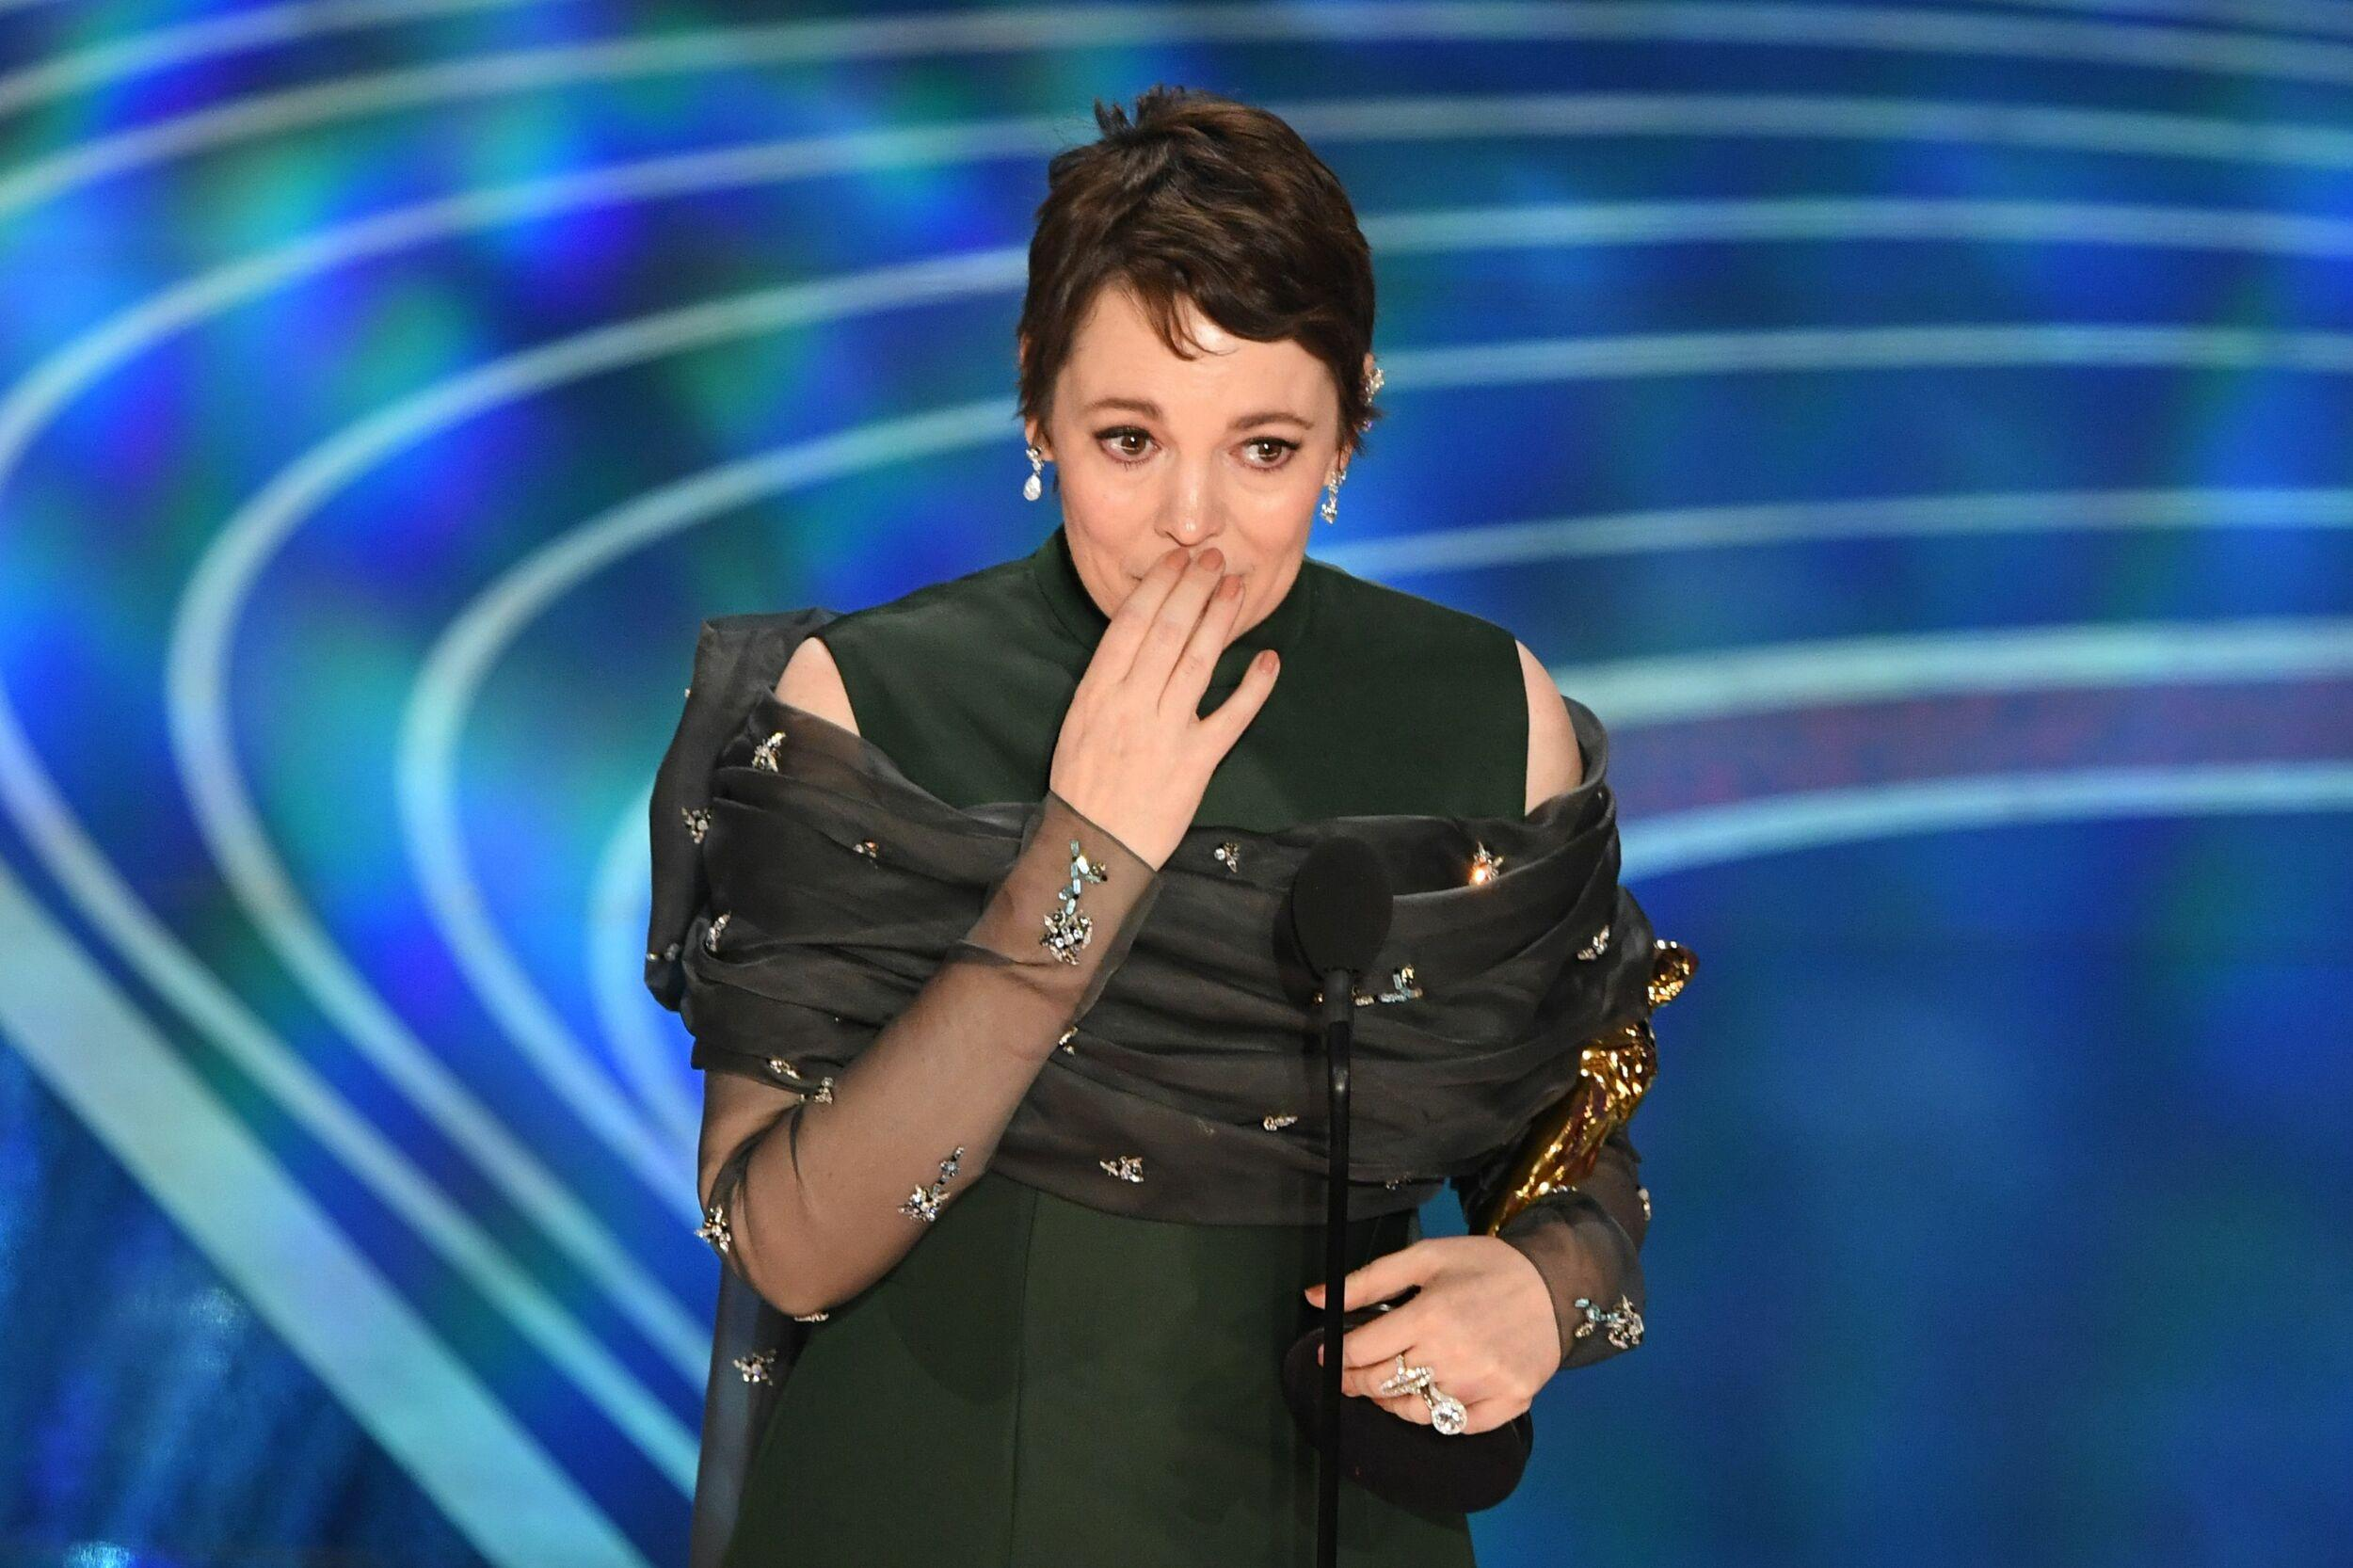 Best Actress nominee for 'The Favourite' Olivia Colman accepts the award for Best Actress during the 91st Annual Academy Awards at the Dolby Theatre in Hollywood, California on February 24, 2019. (Photo by VALERIE MACON / AFP)        (Photo credit should read VALERIE MACON/AFP/Getty Images)